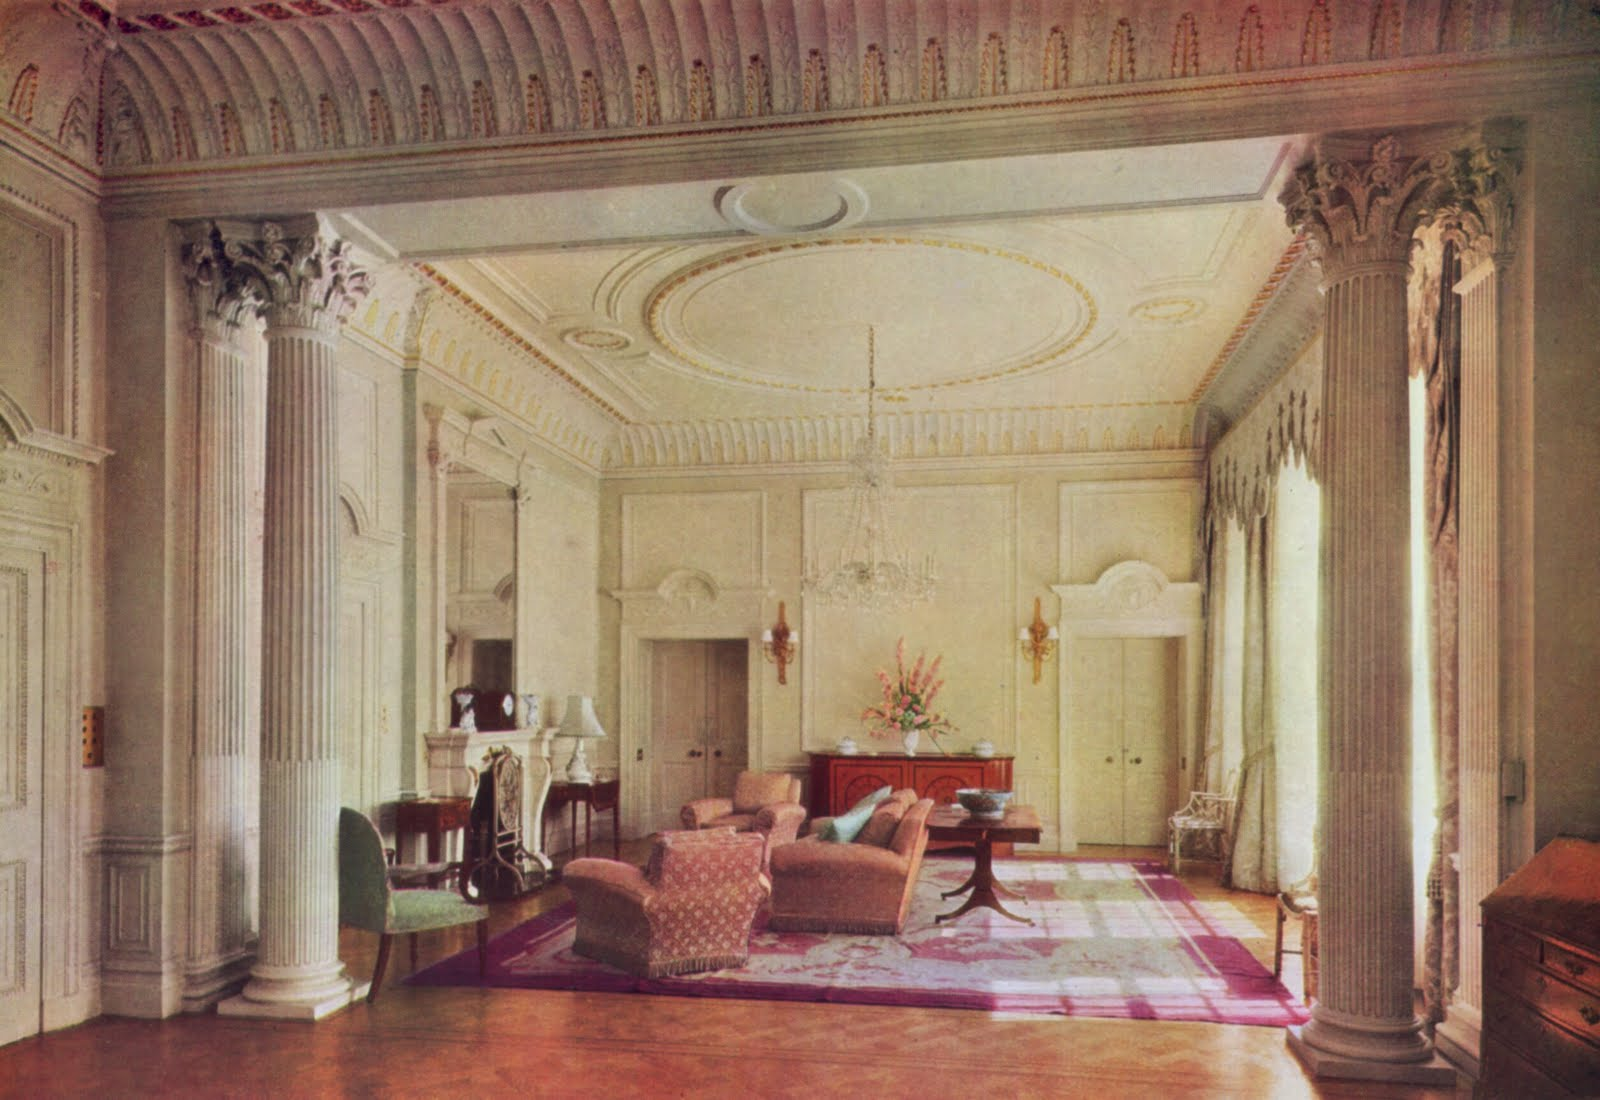 ... By The Furniture To The Rooms Of Clarence House. These, Though Built  During The Regency, Are Essentially Late Georgian In Character, With The  Spacious ...